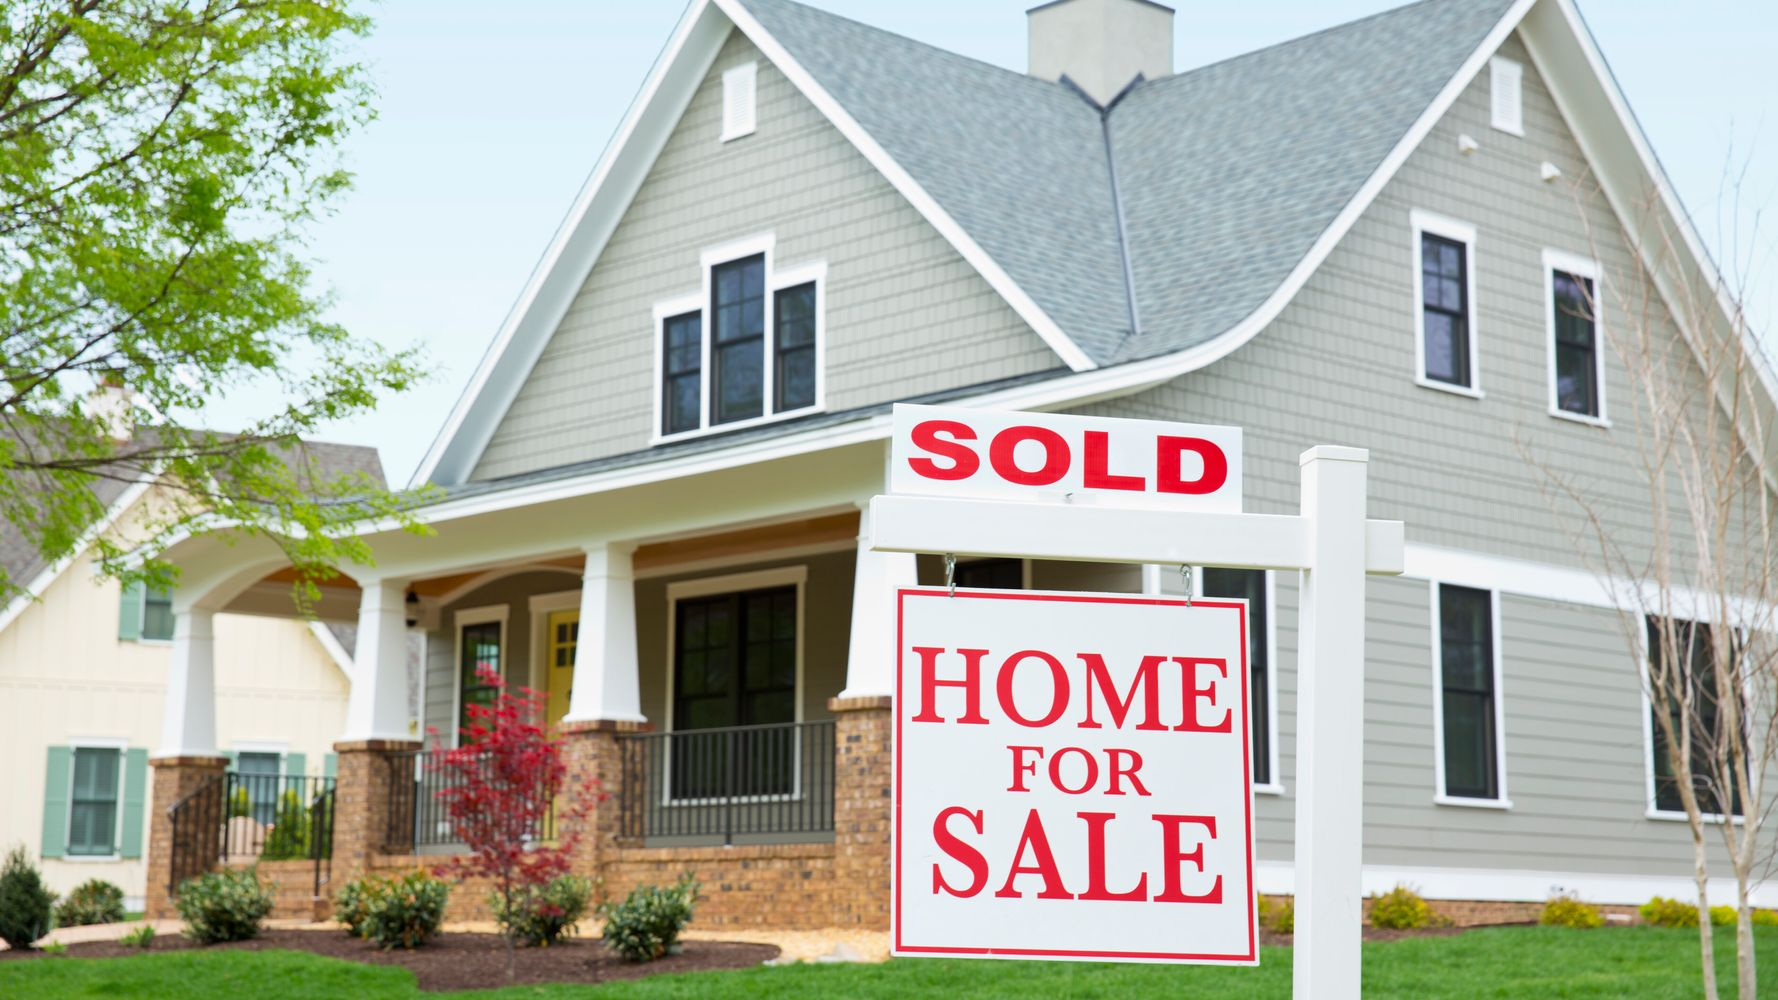 The ROI On A House Probably Isn't As High As You Think